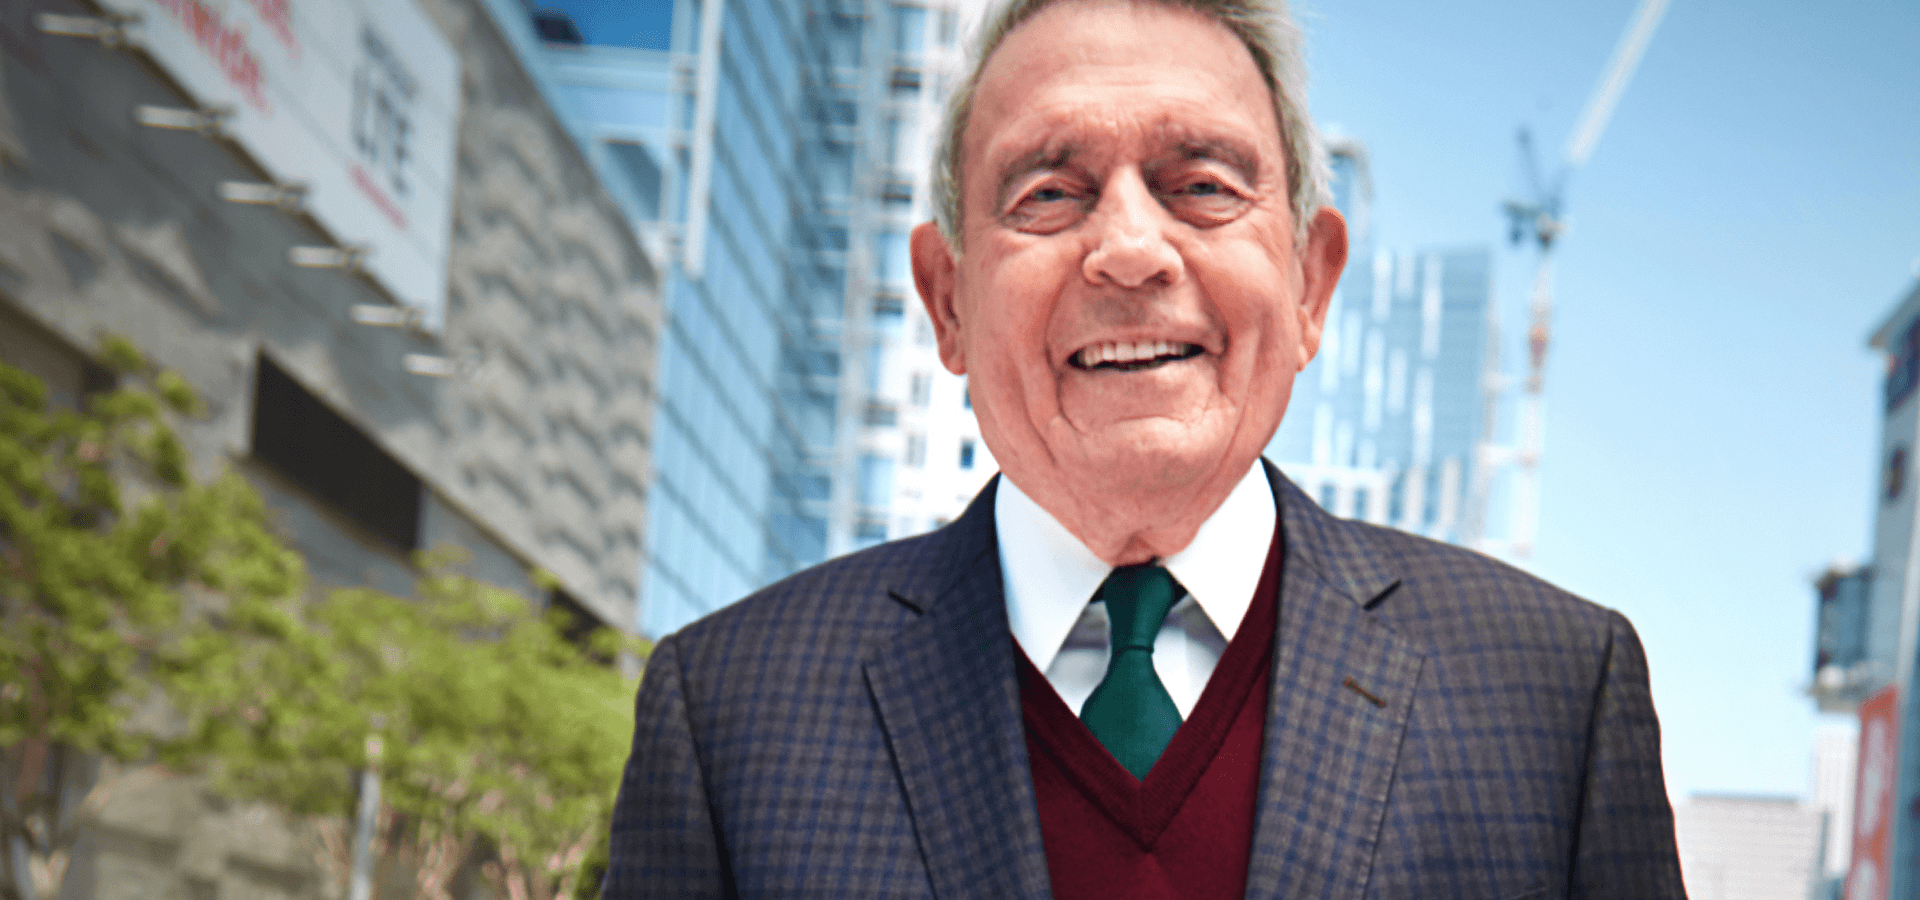 The Big Interview with Dan Rather – Season 6